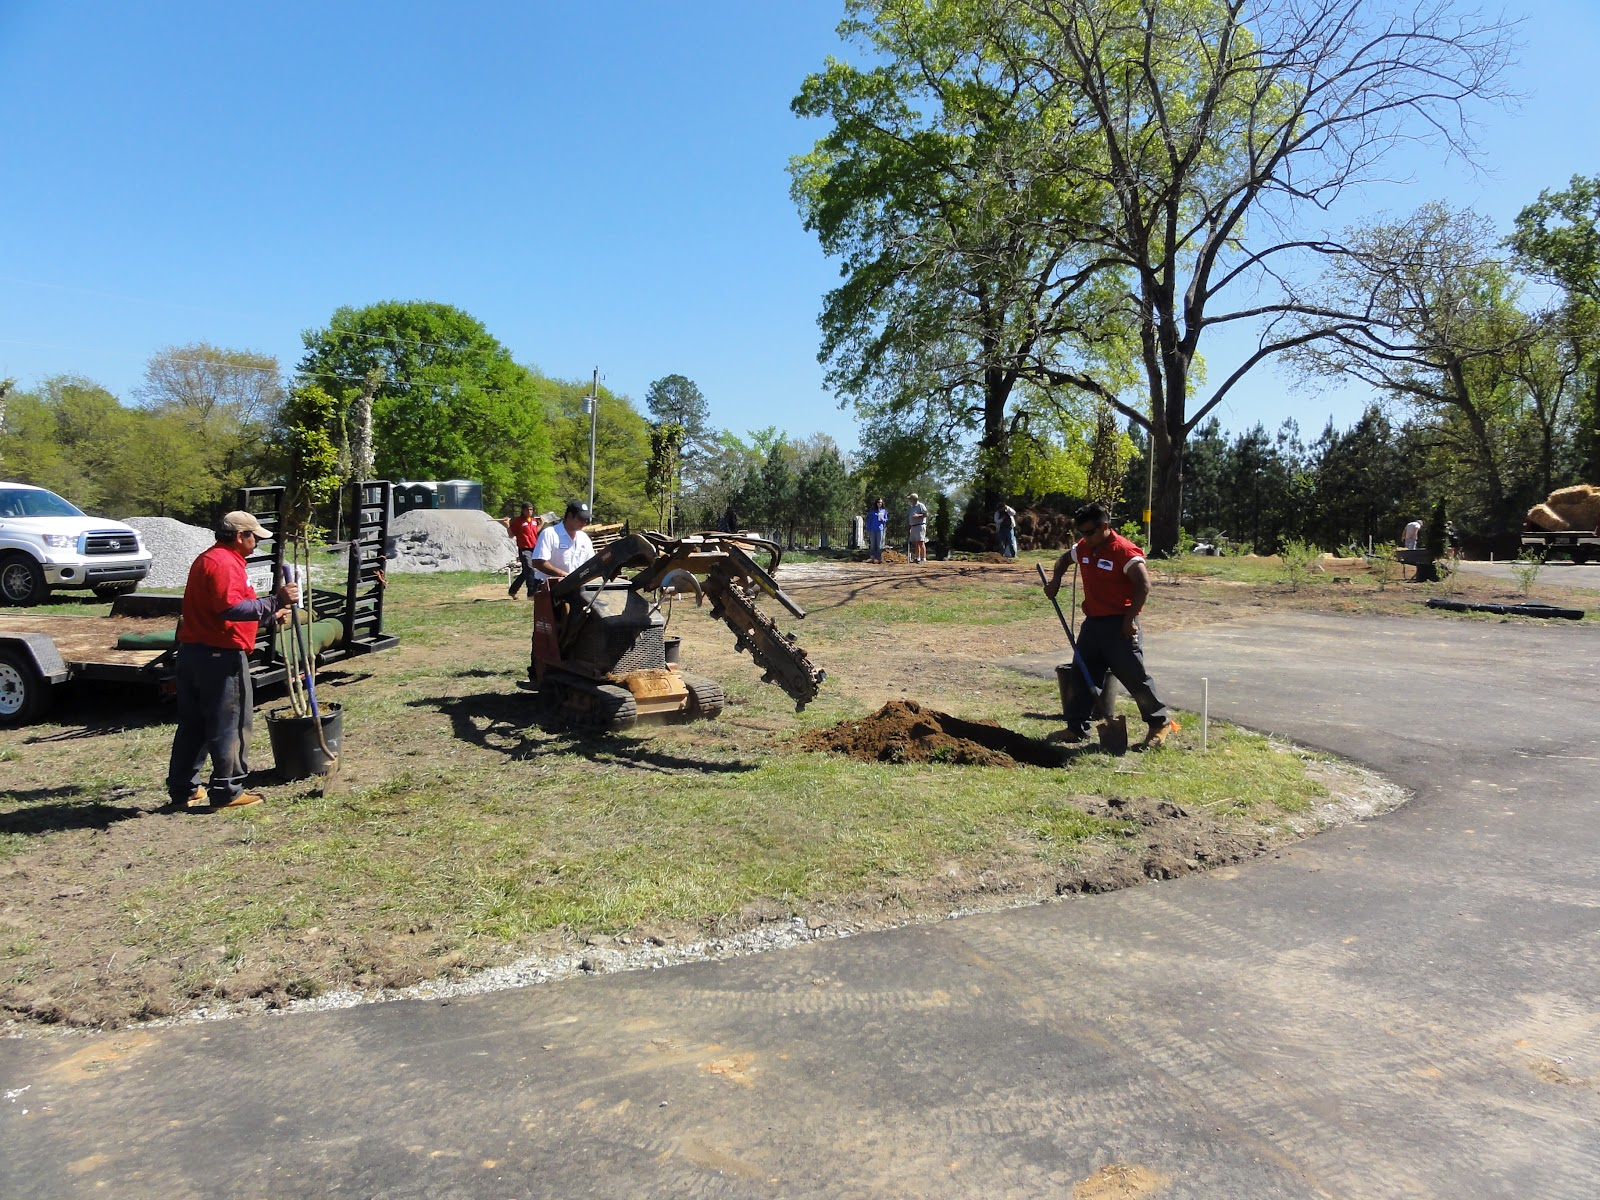 College Pro Landscaping Helping To Dig Holes For The Trees To Be Planted